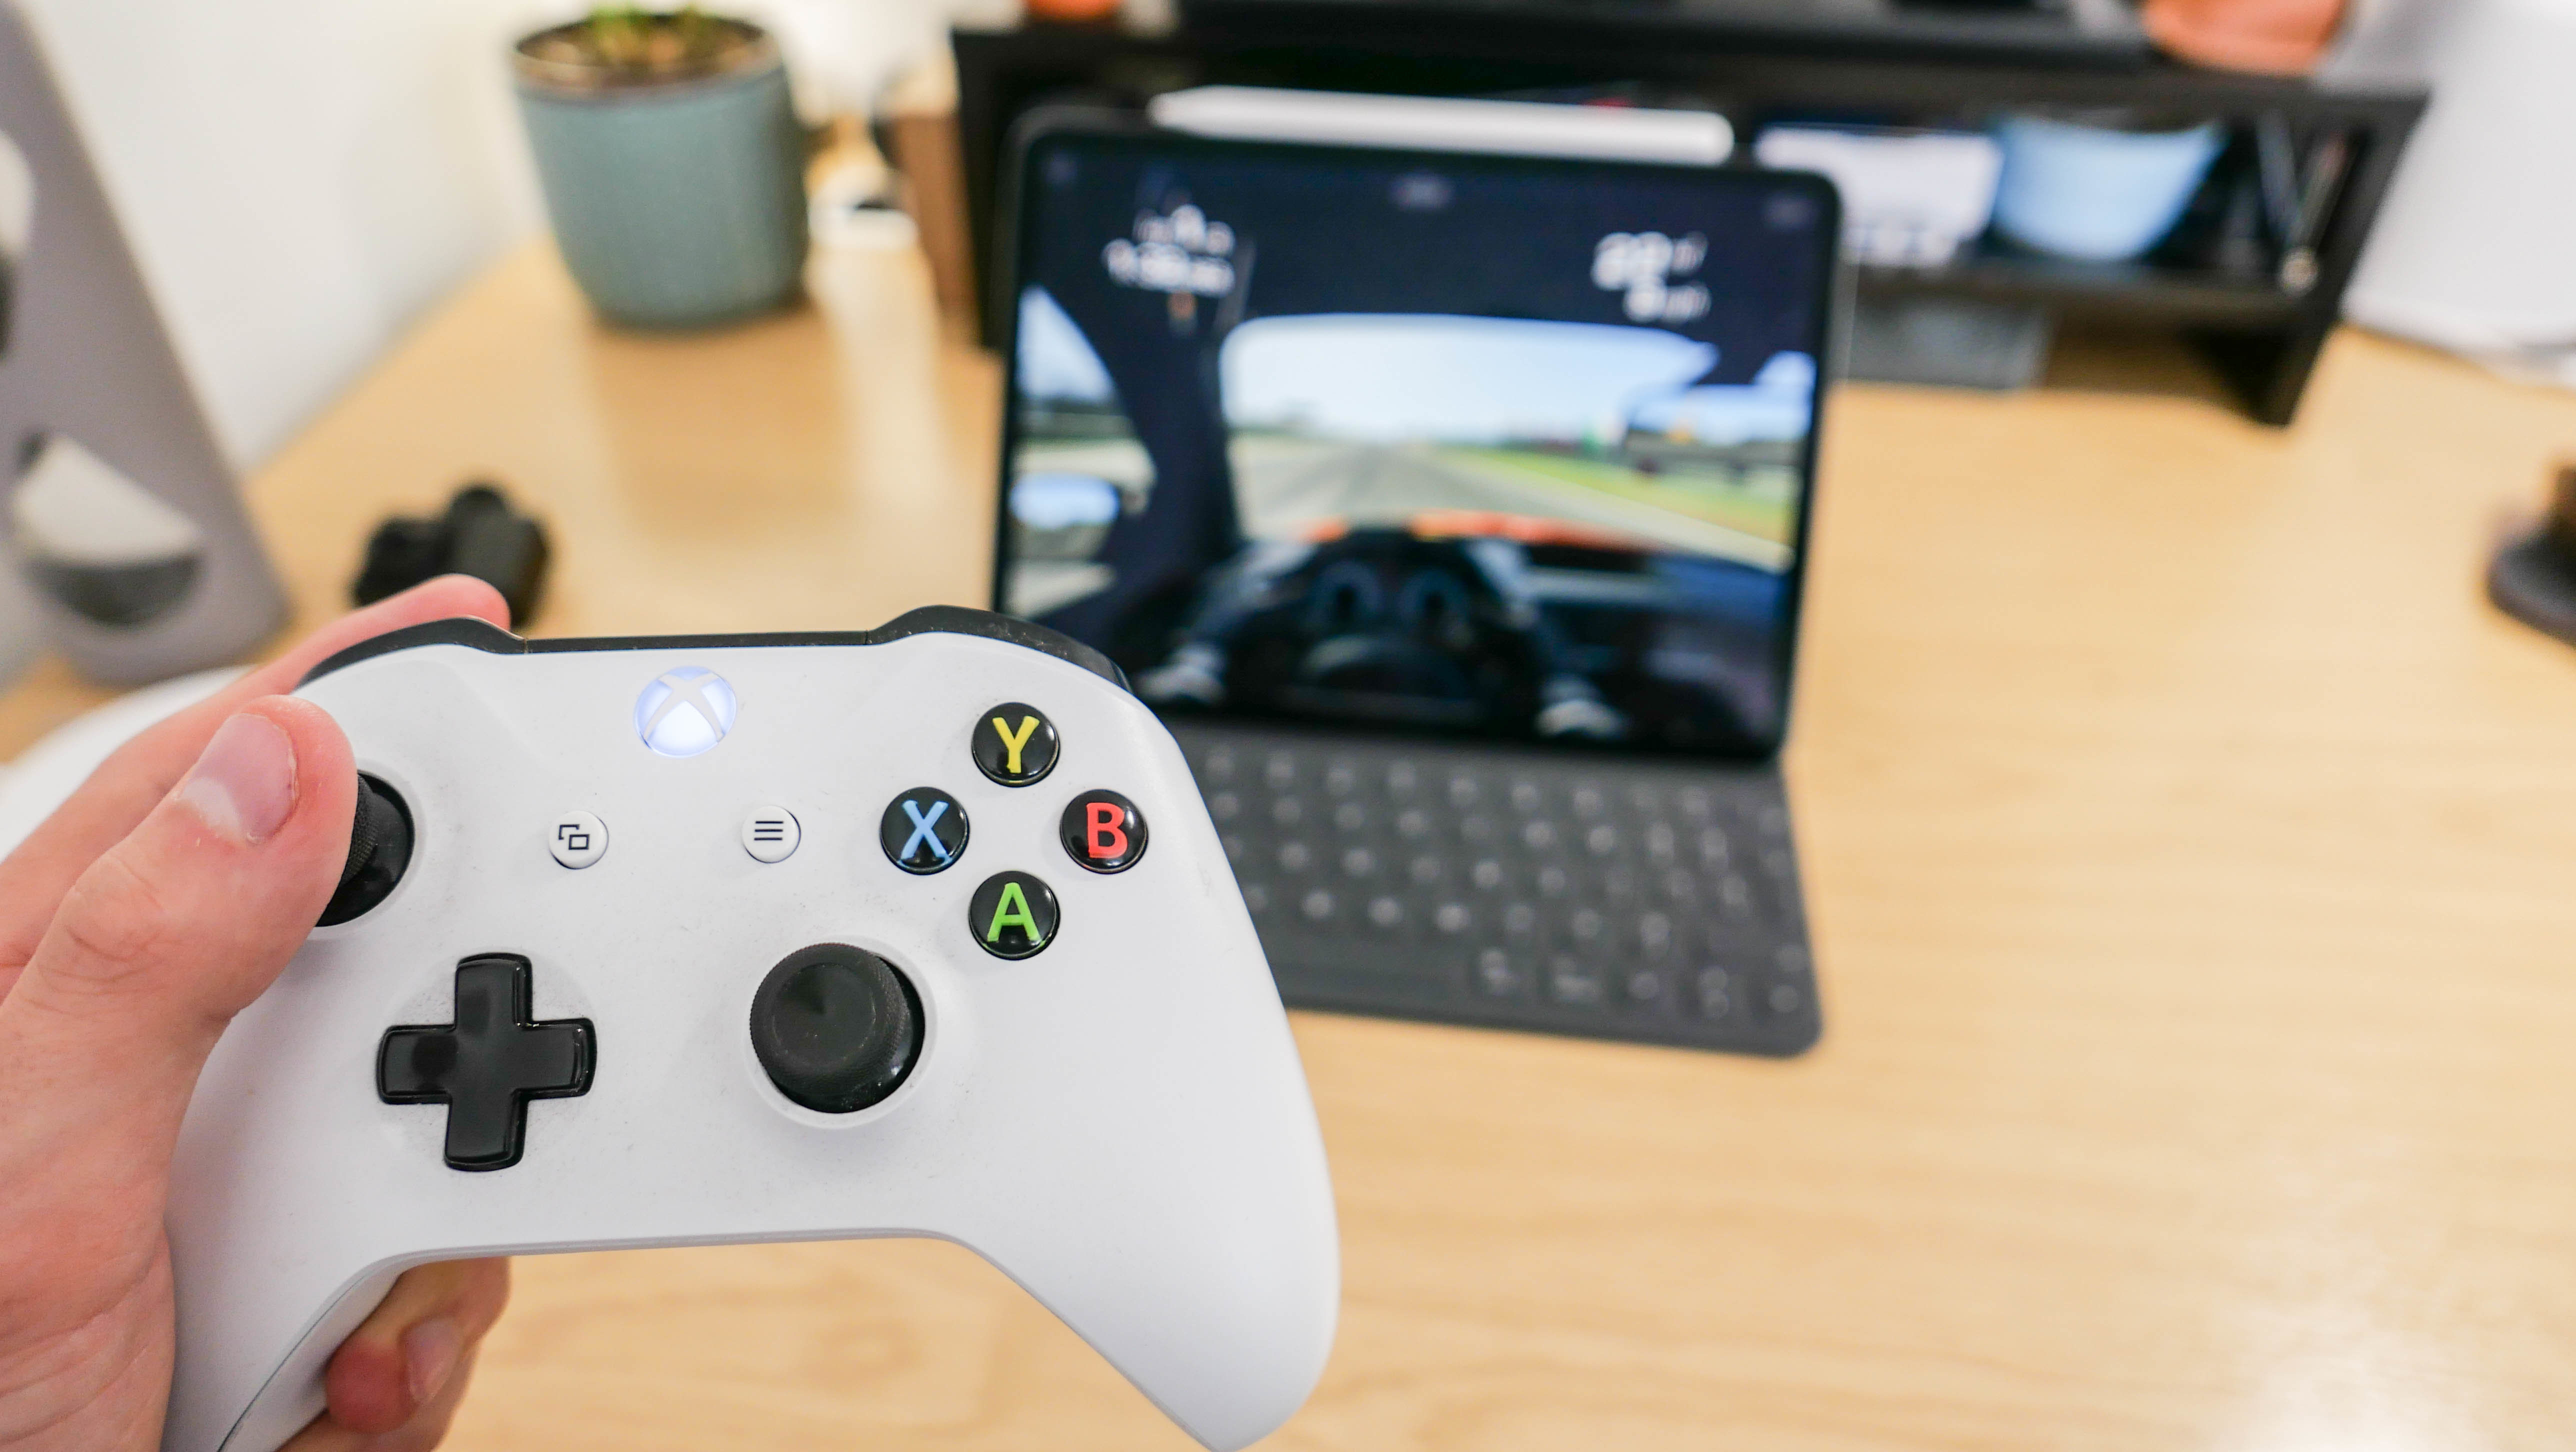 With iPadOS, the iPad works with Xbox and PS4 controllers - Gearbrain